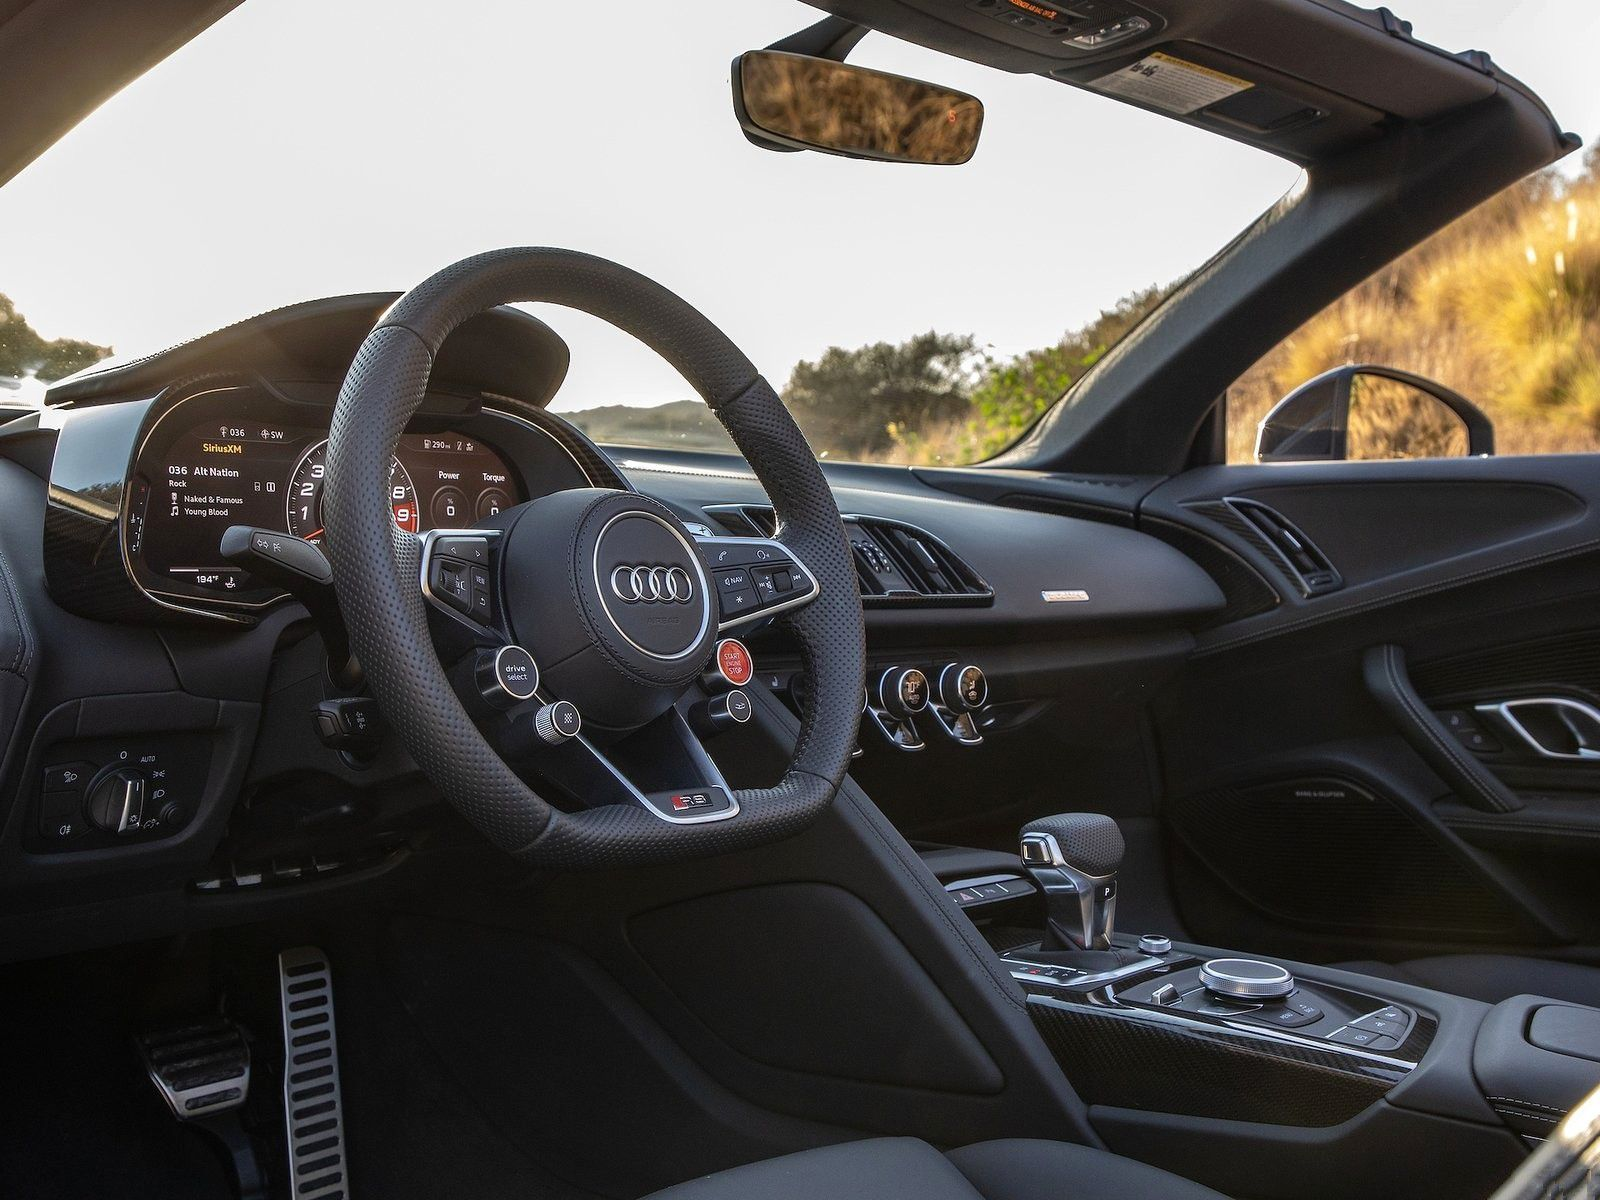 VOITURES DE LEGENDE (1180) : AUDI  R8 SPYDER VERSION USA - 2020